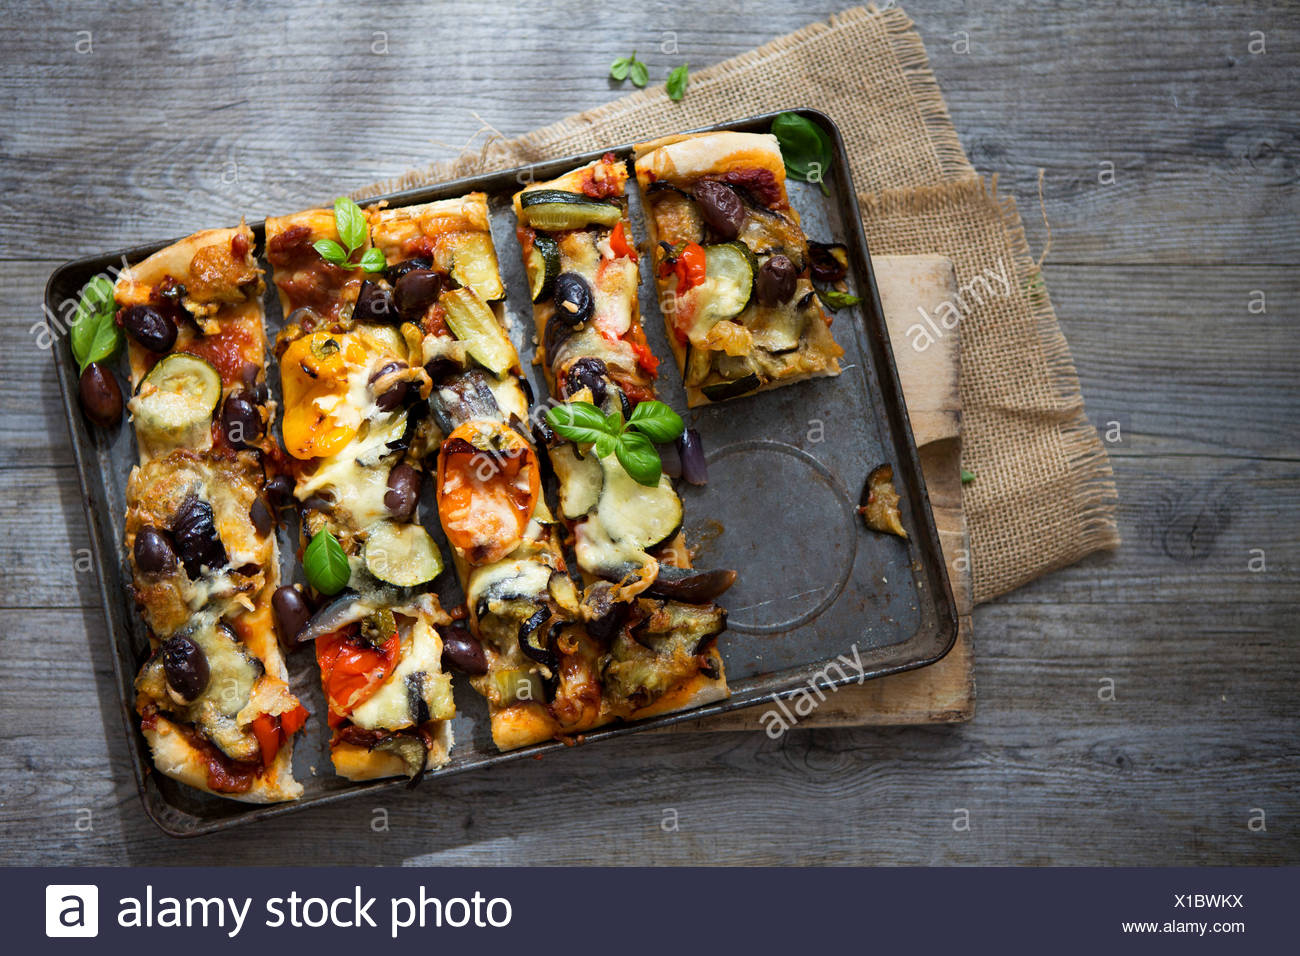 Homemade Roasted Vegetable Pizza with Olives, Basil and Peppers, Sliced - Stock Image